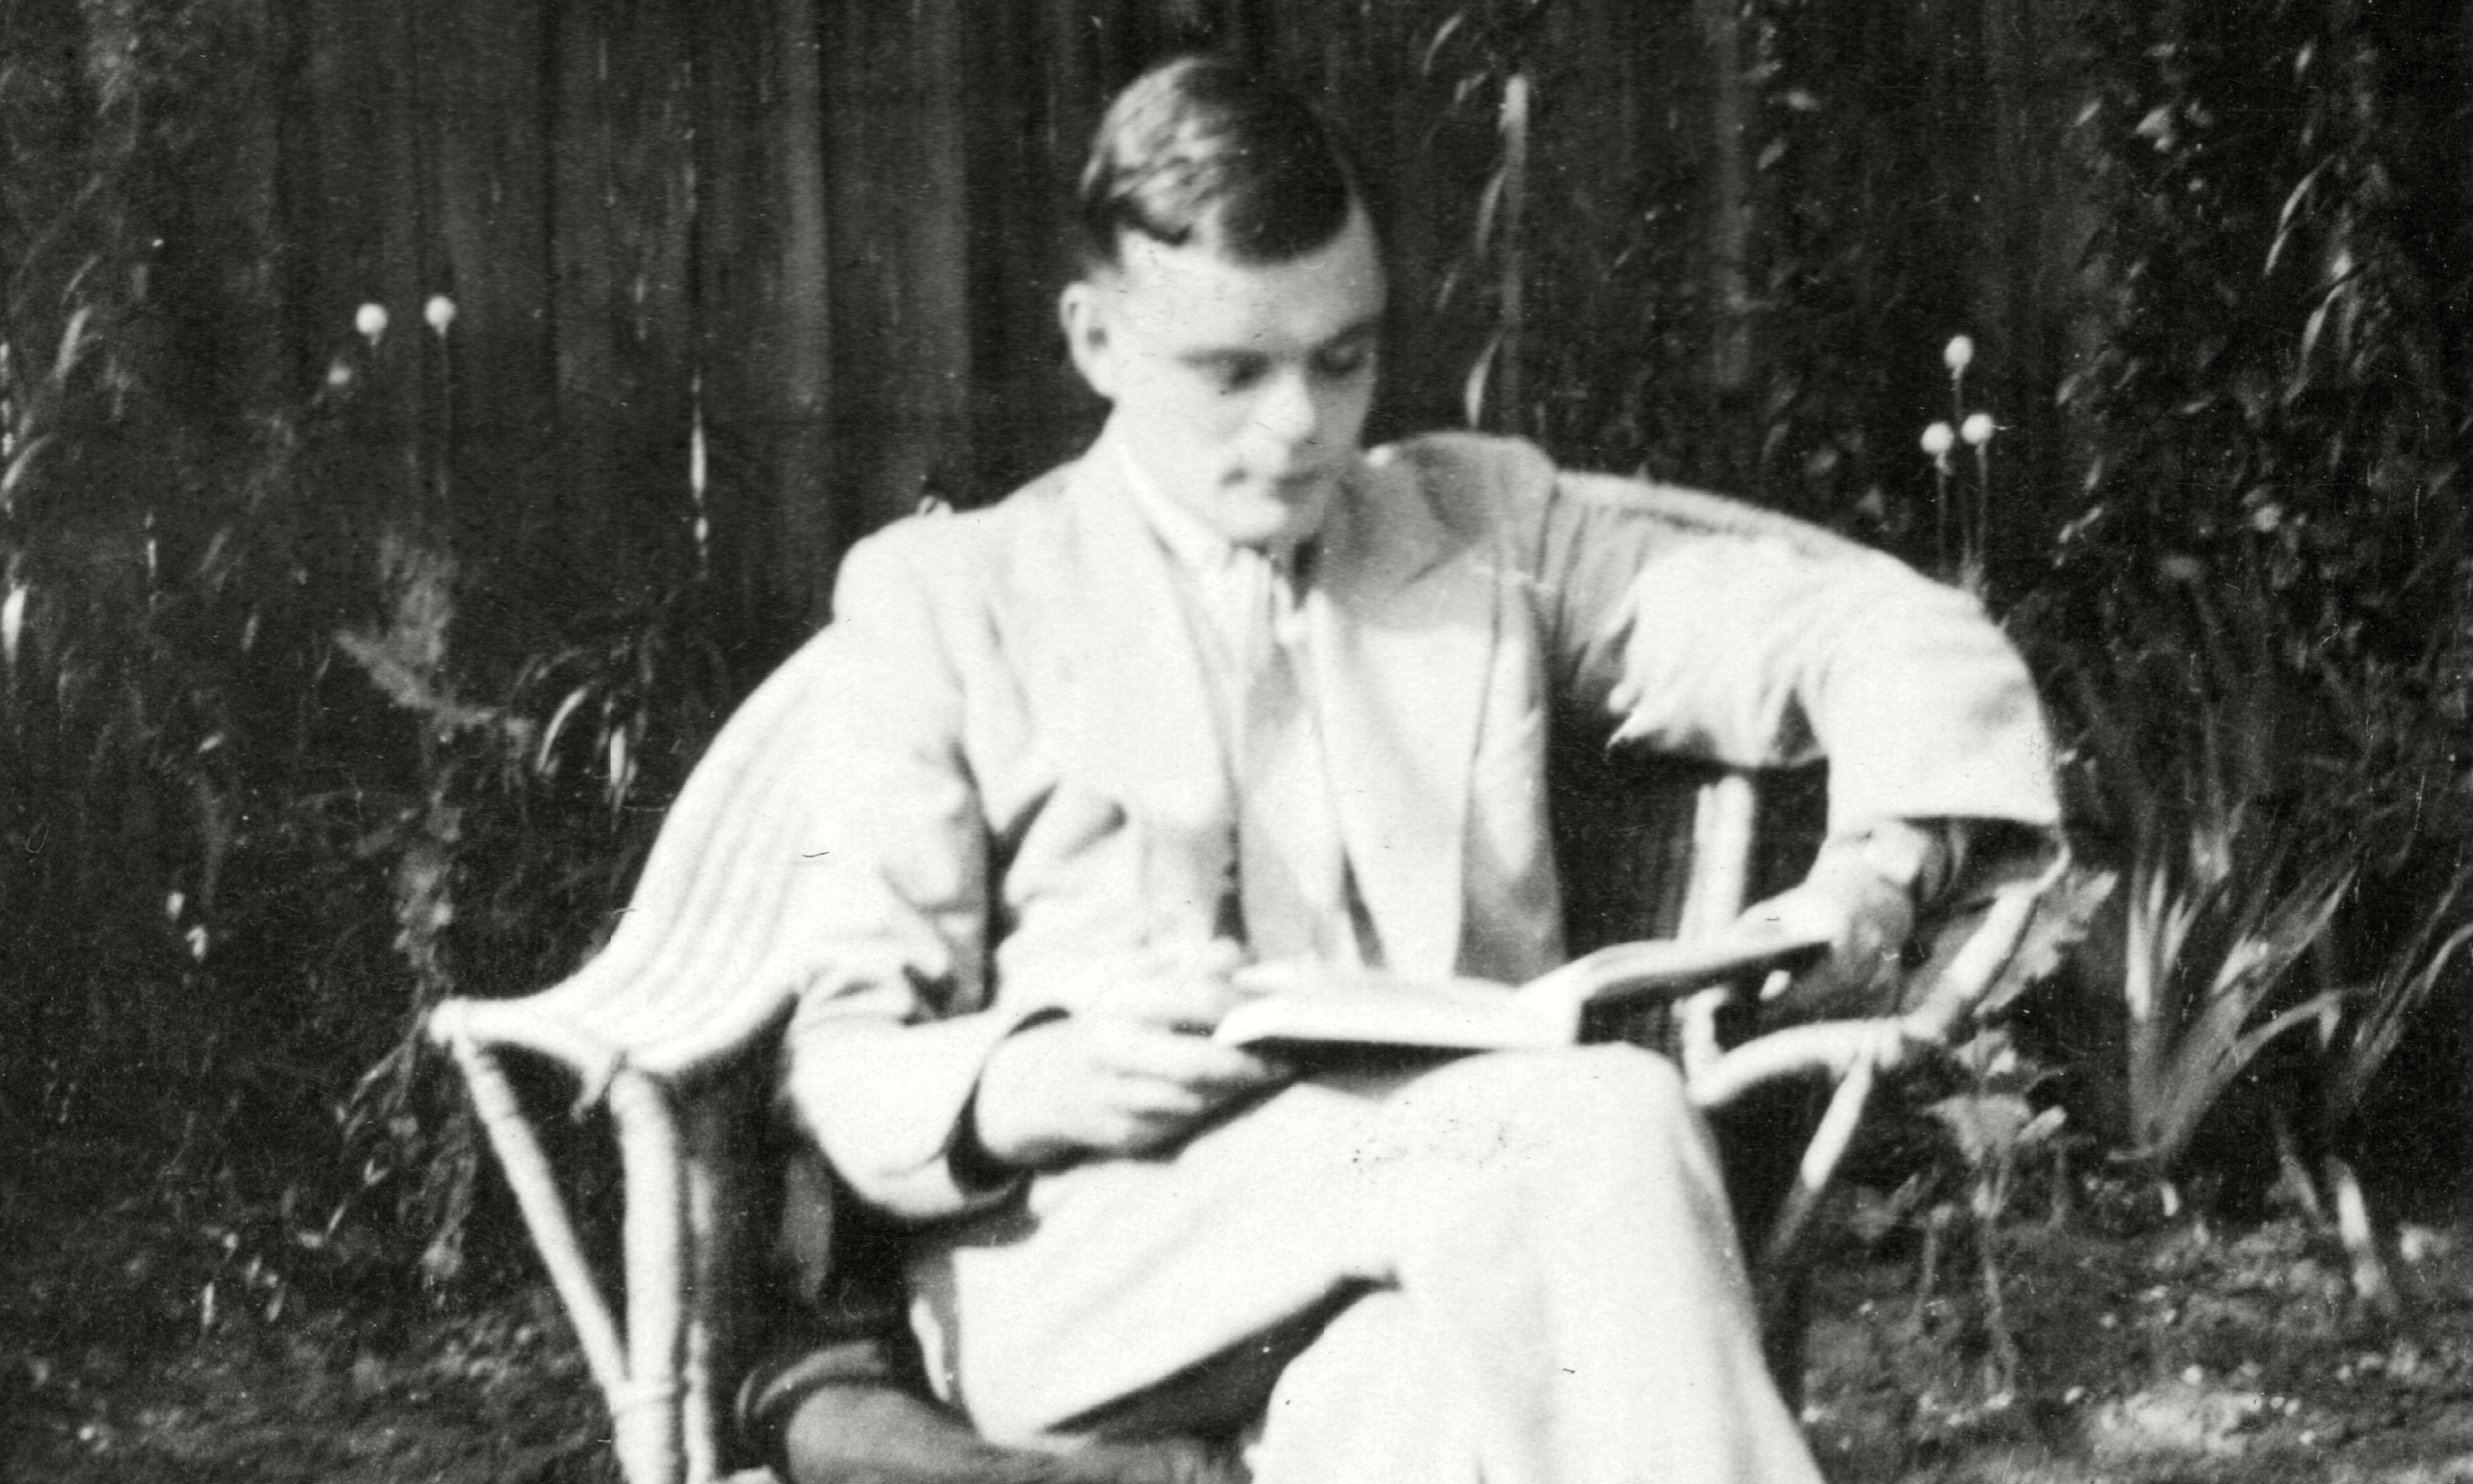 Scientist Alan Turing's degree, medal and memorabilia recovered in Colorado